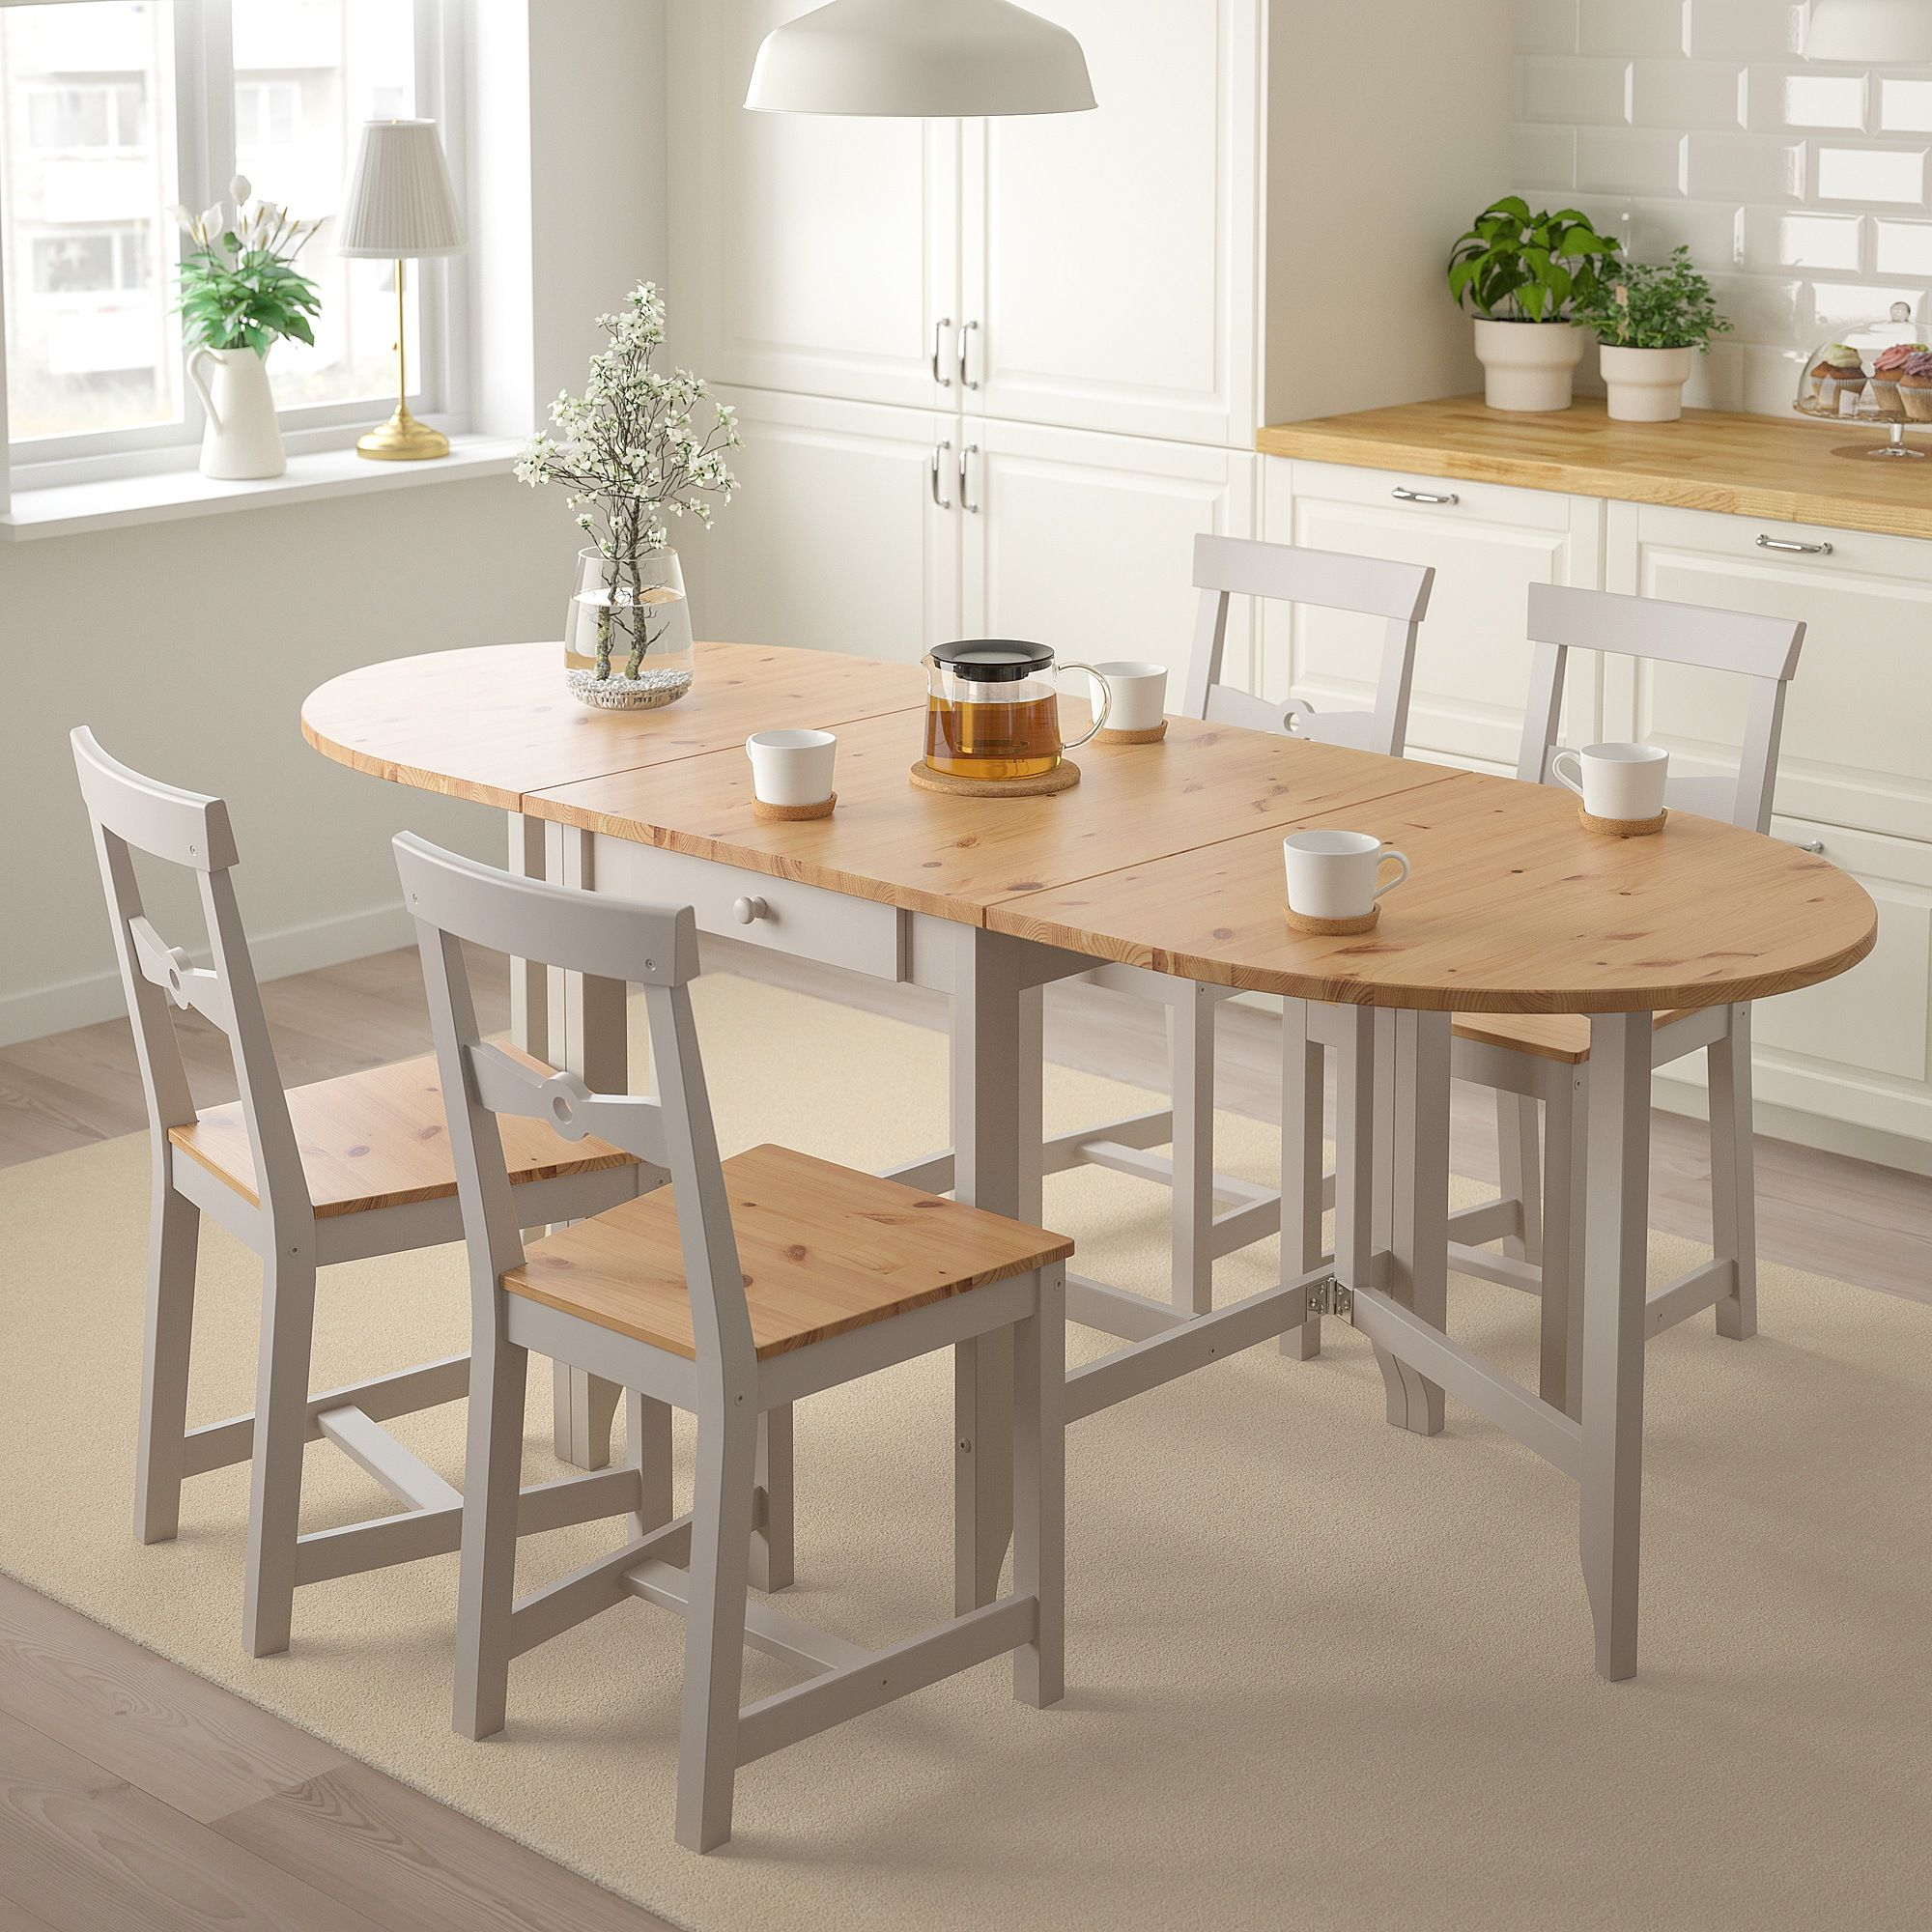 Gamleby Gateleg Table Light Antique Stain Gray 263 8 523 4 791 8x303 4 67 134 201x78 Cm Ikea Small Kitchen Tables Dining Table Small Space Dining Table In Kitchen